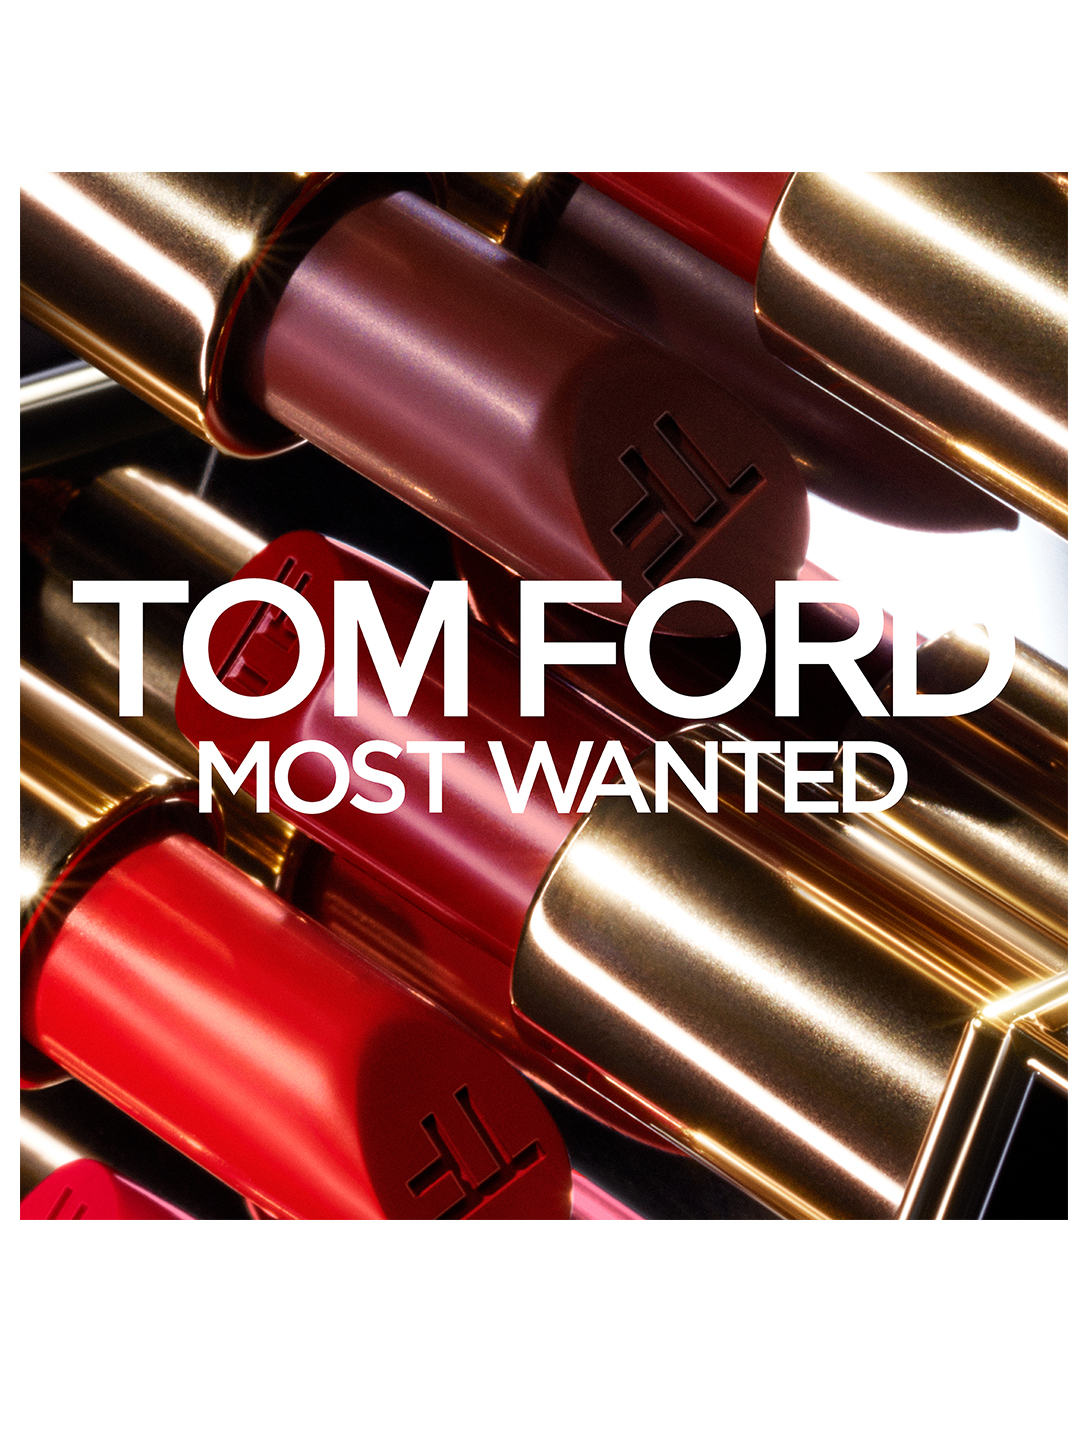 TOM FORD Lip Colour Clutch - Most Wanted Beauty Orange